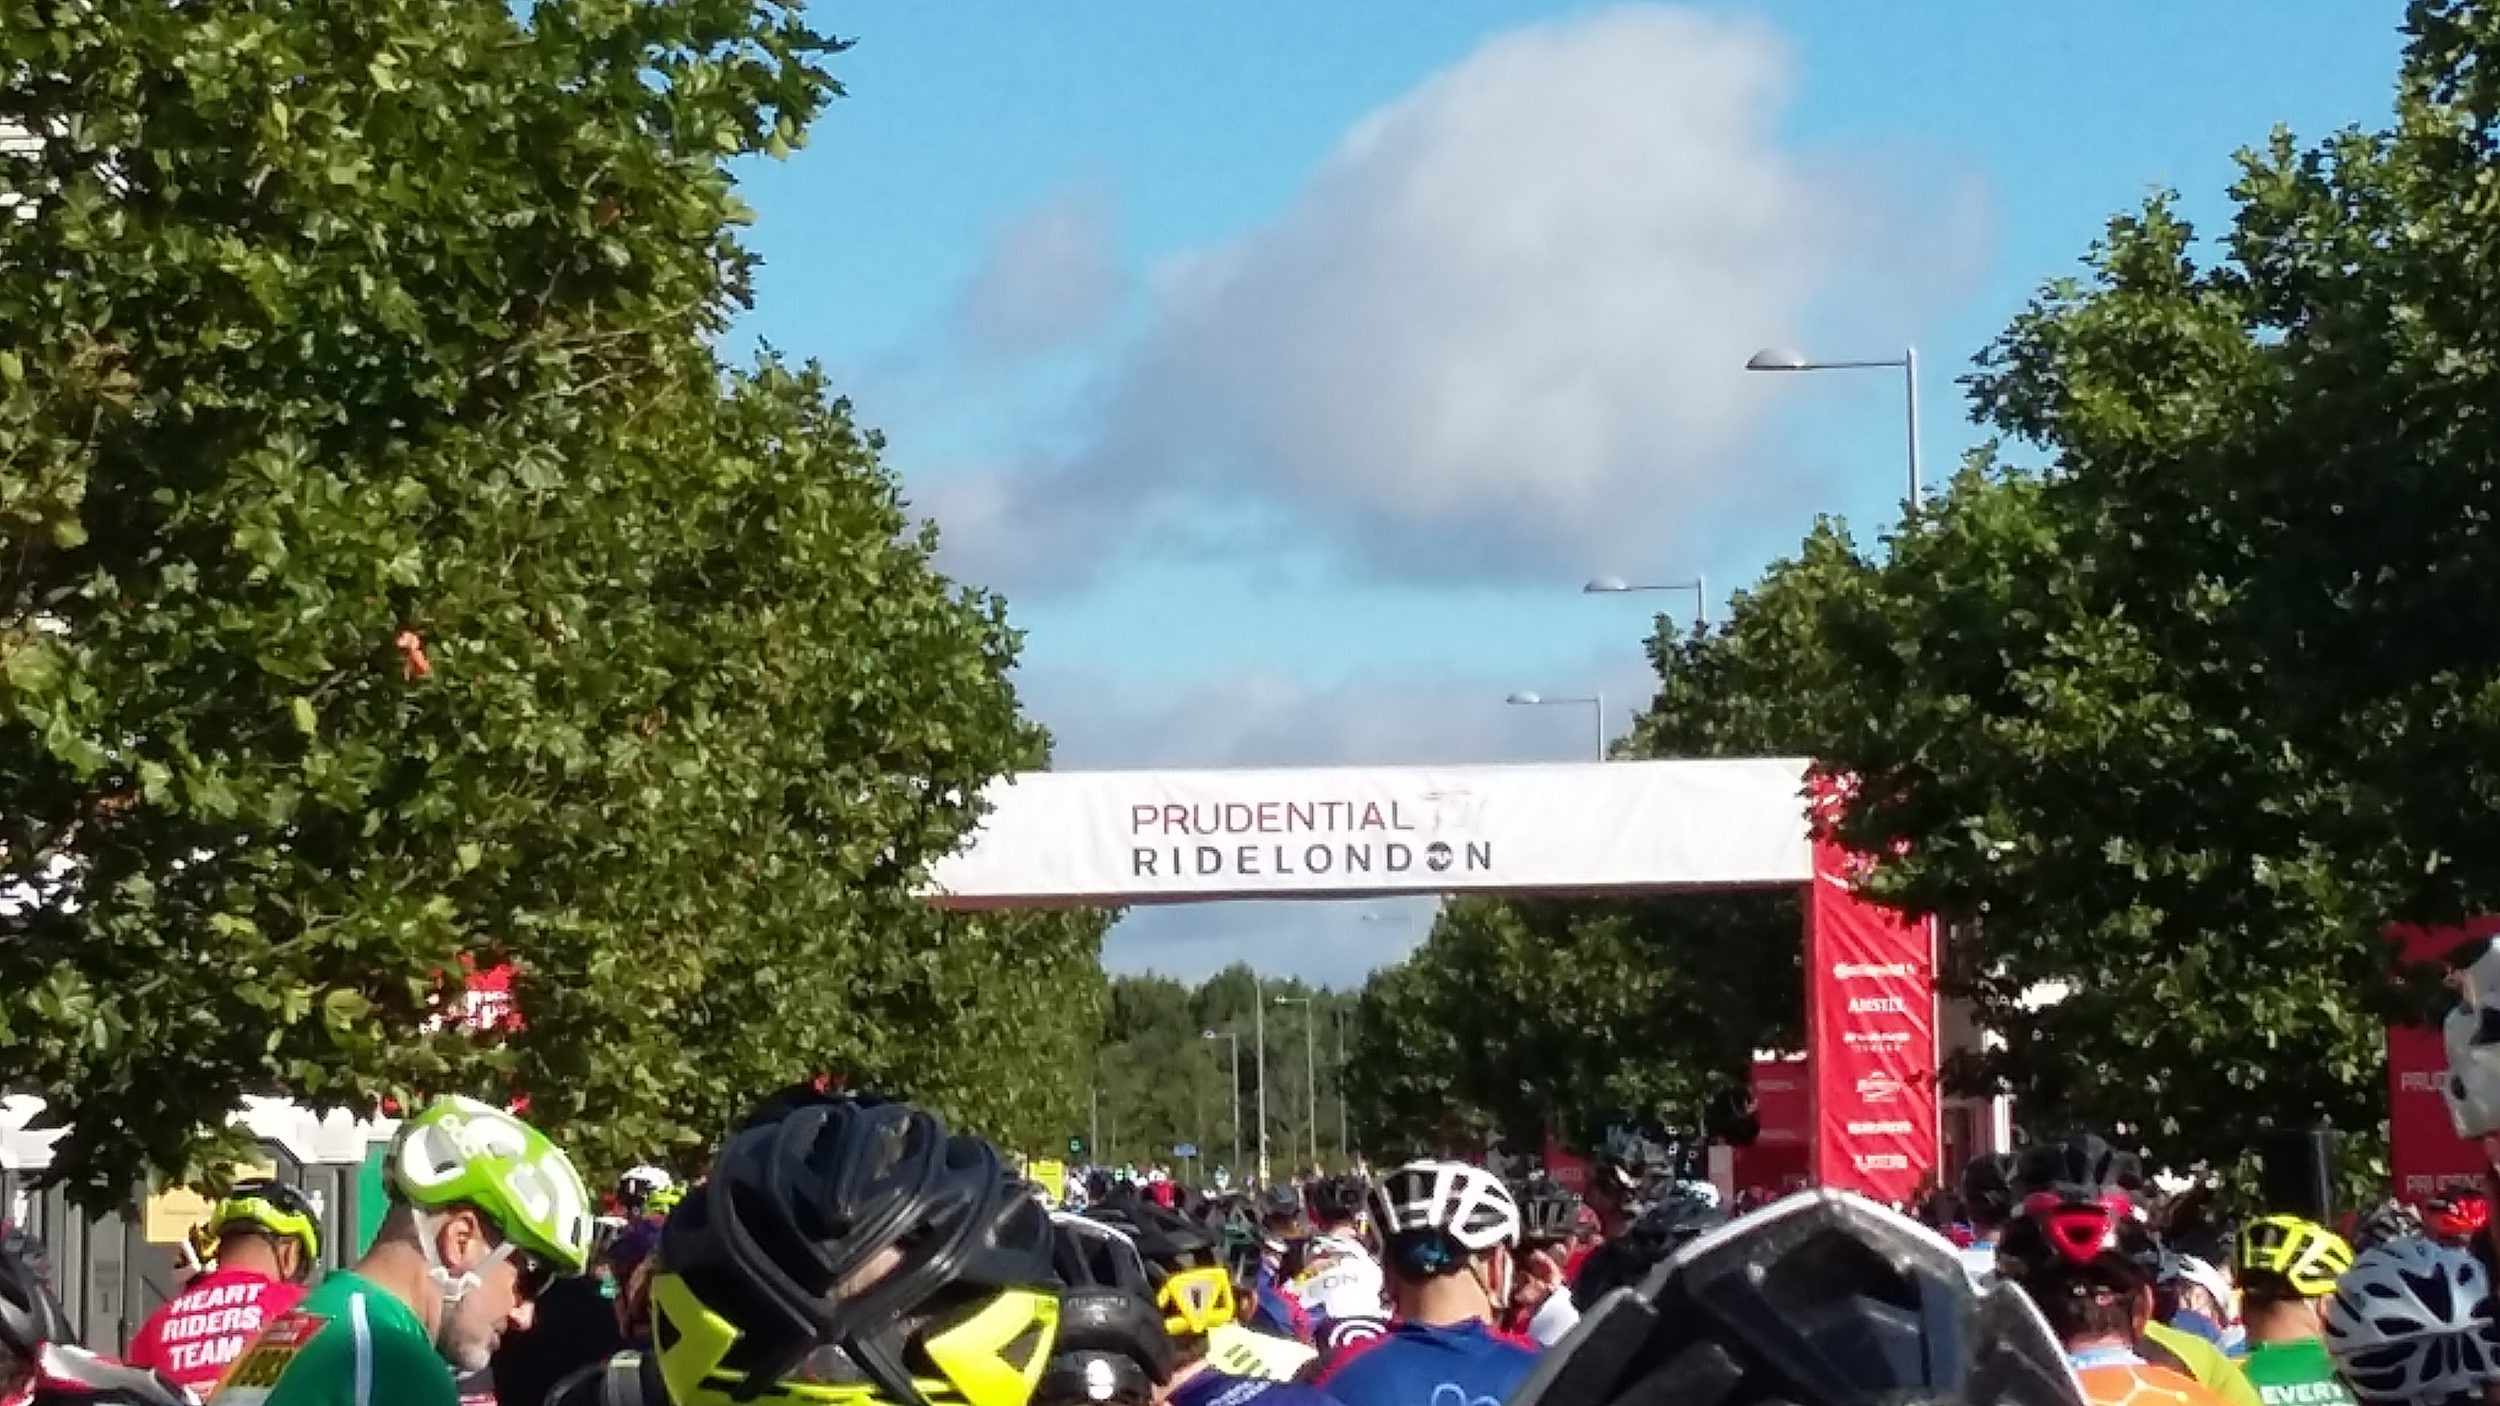 Our two heroes of the Prudential Ride London! – Daybreak